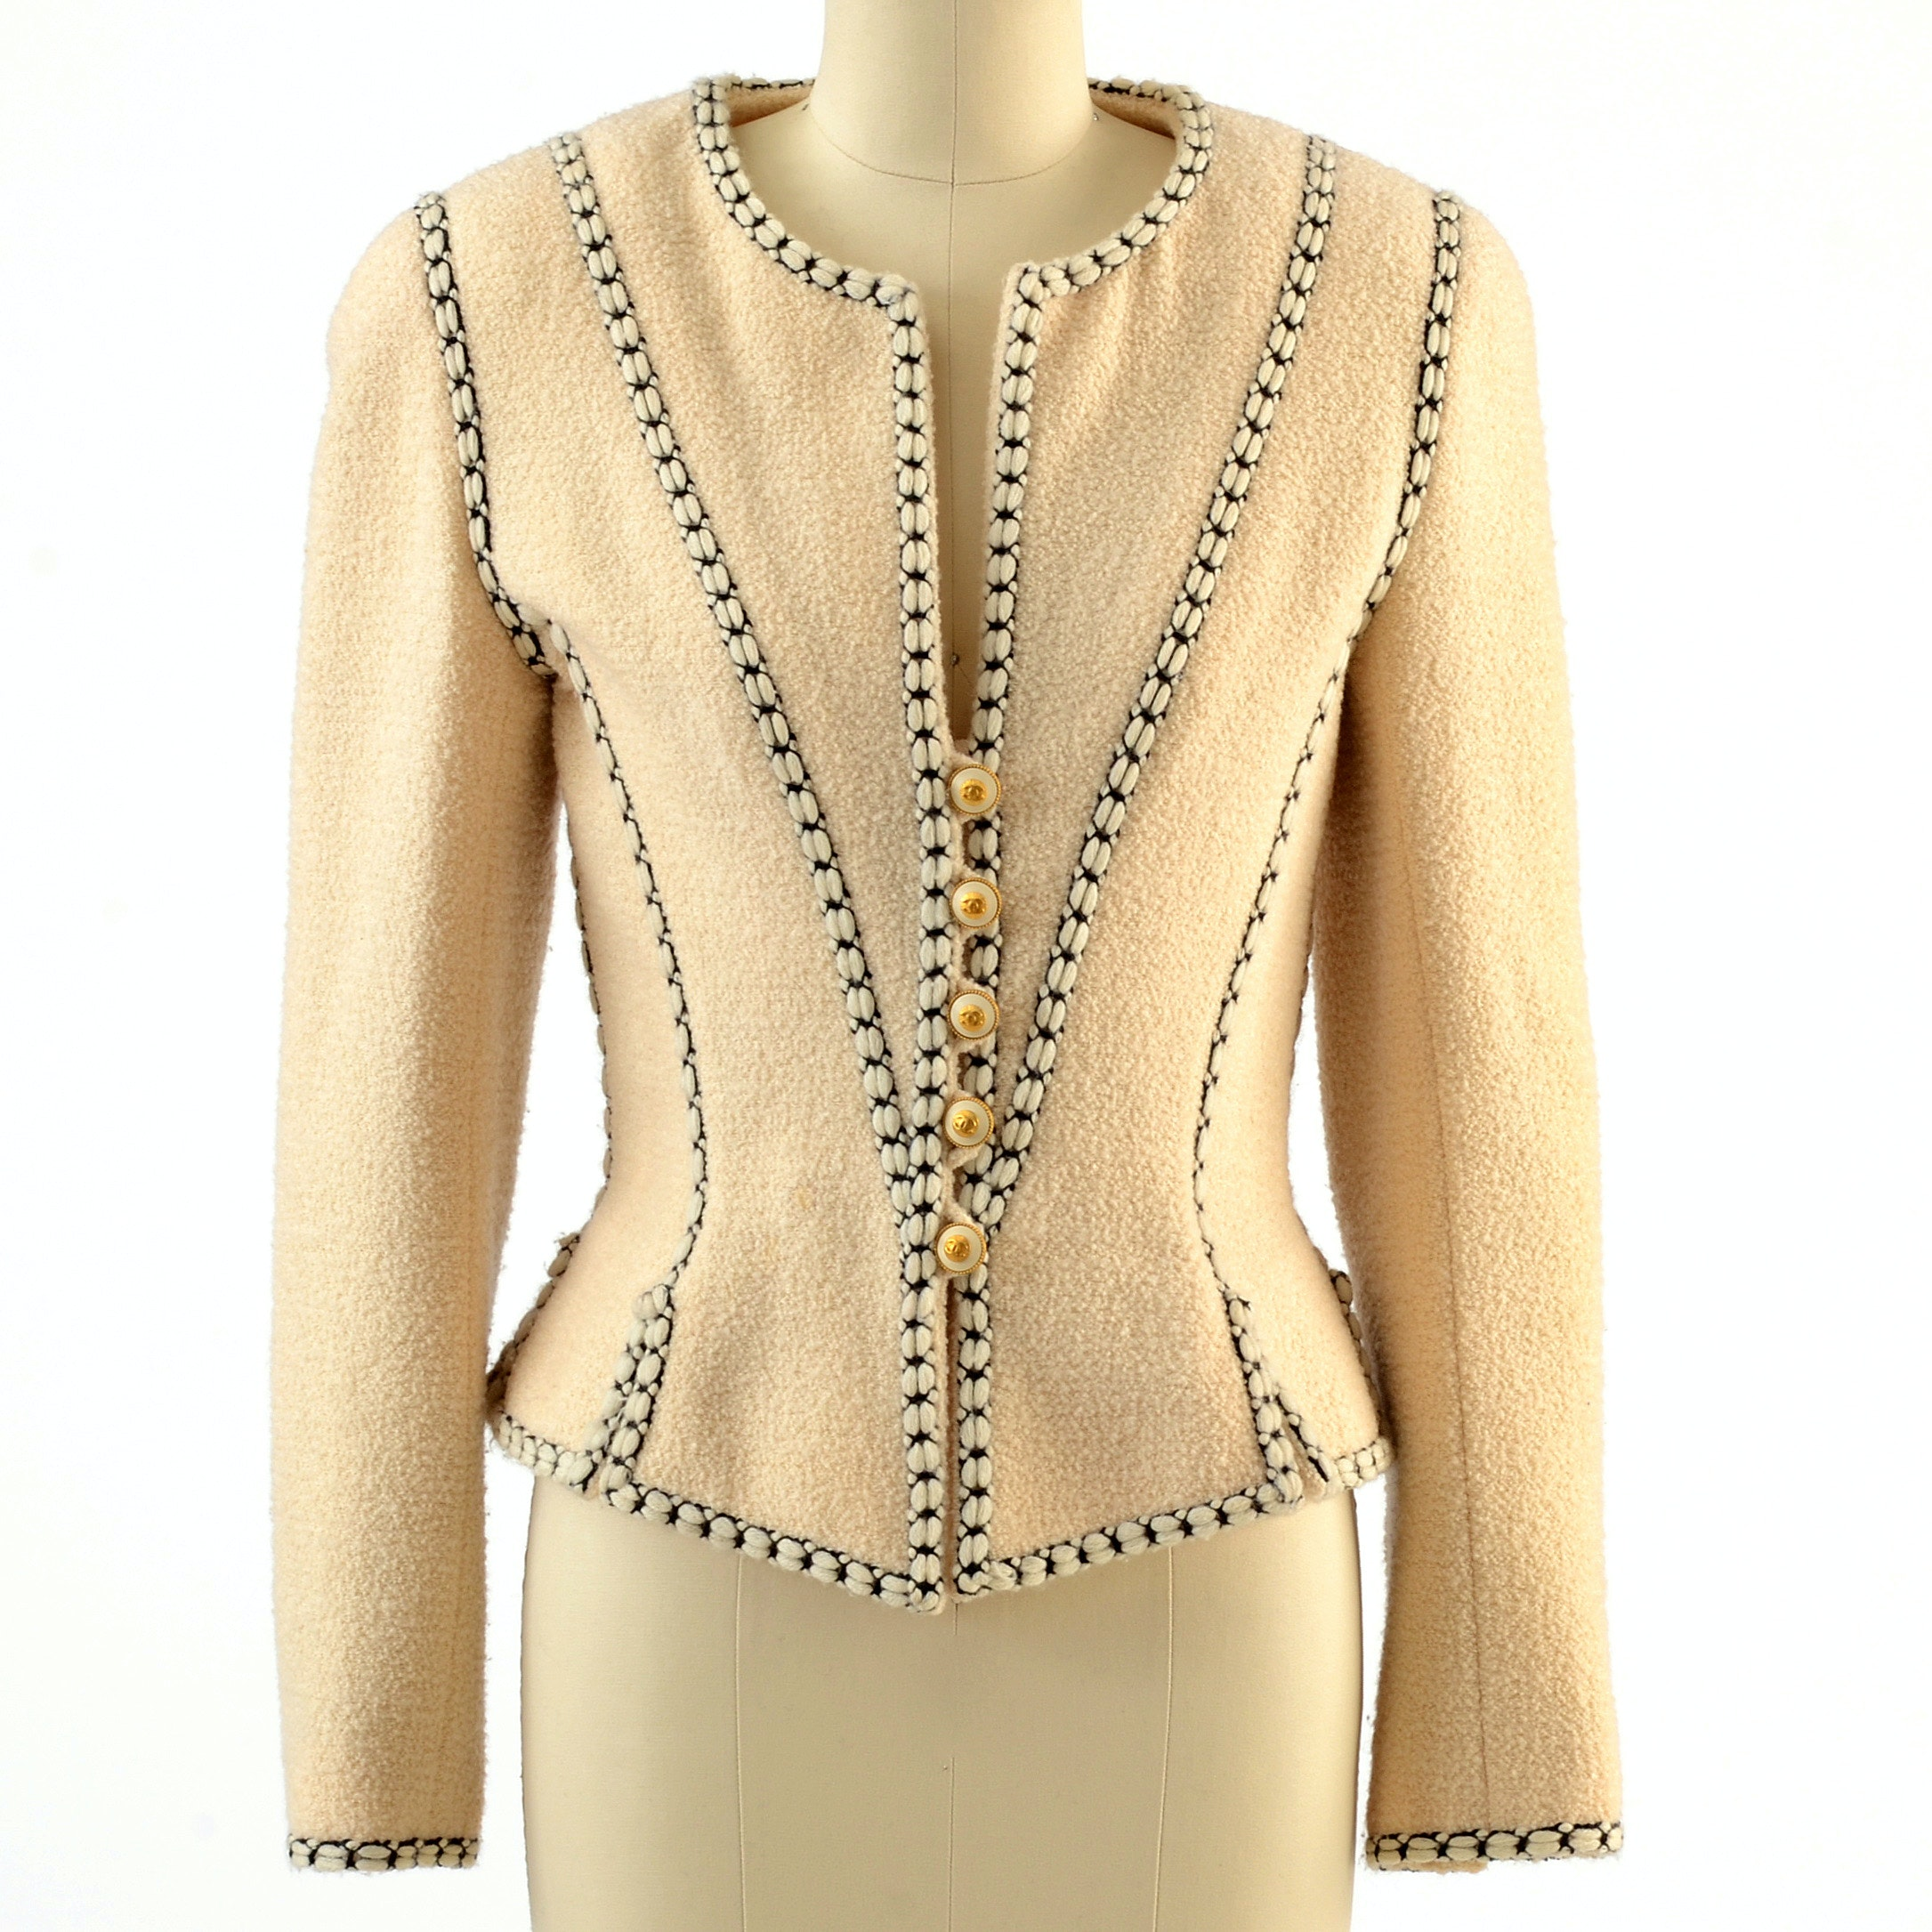 1990s Chanel Boutique CC Logo Button Front Ivory Boiled Wool and Silk Suit Jacket Trimmed in Black